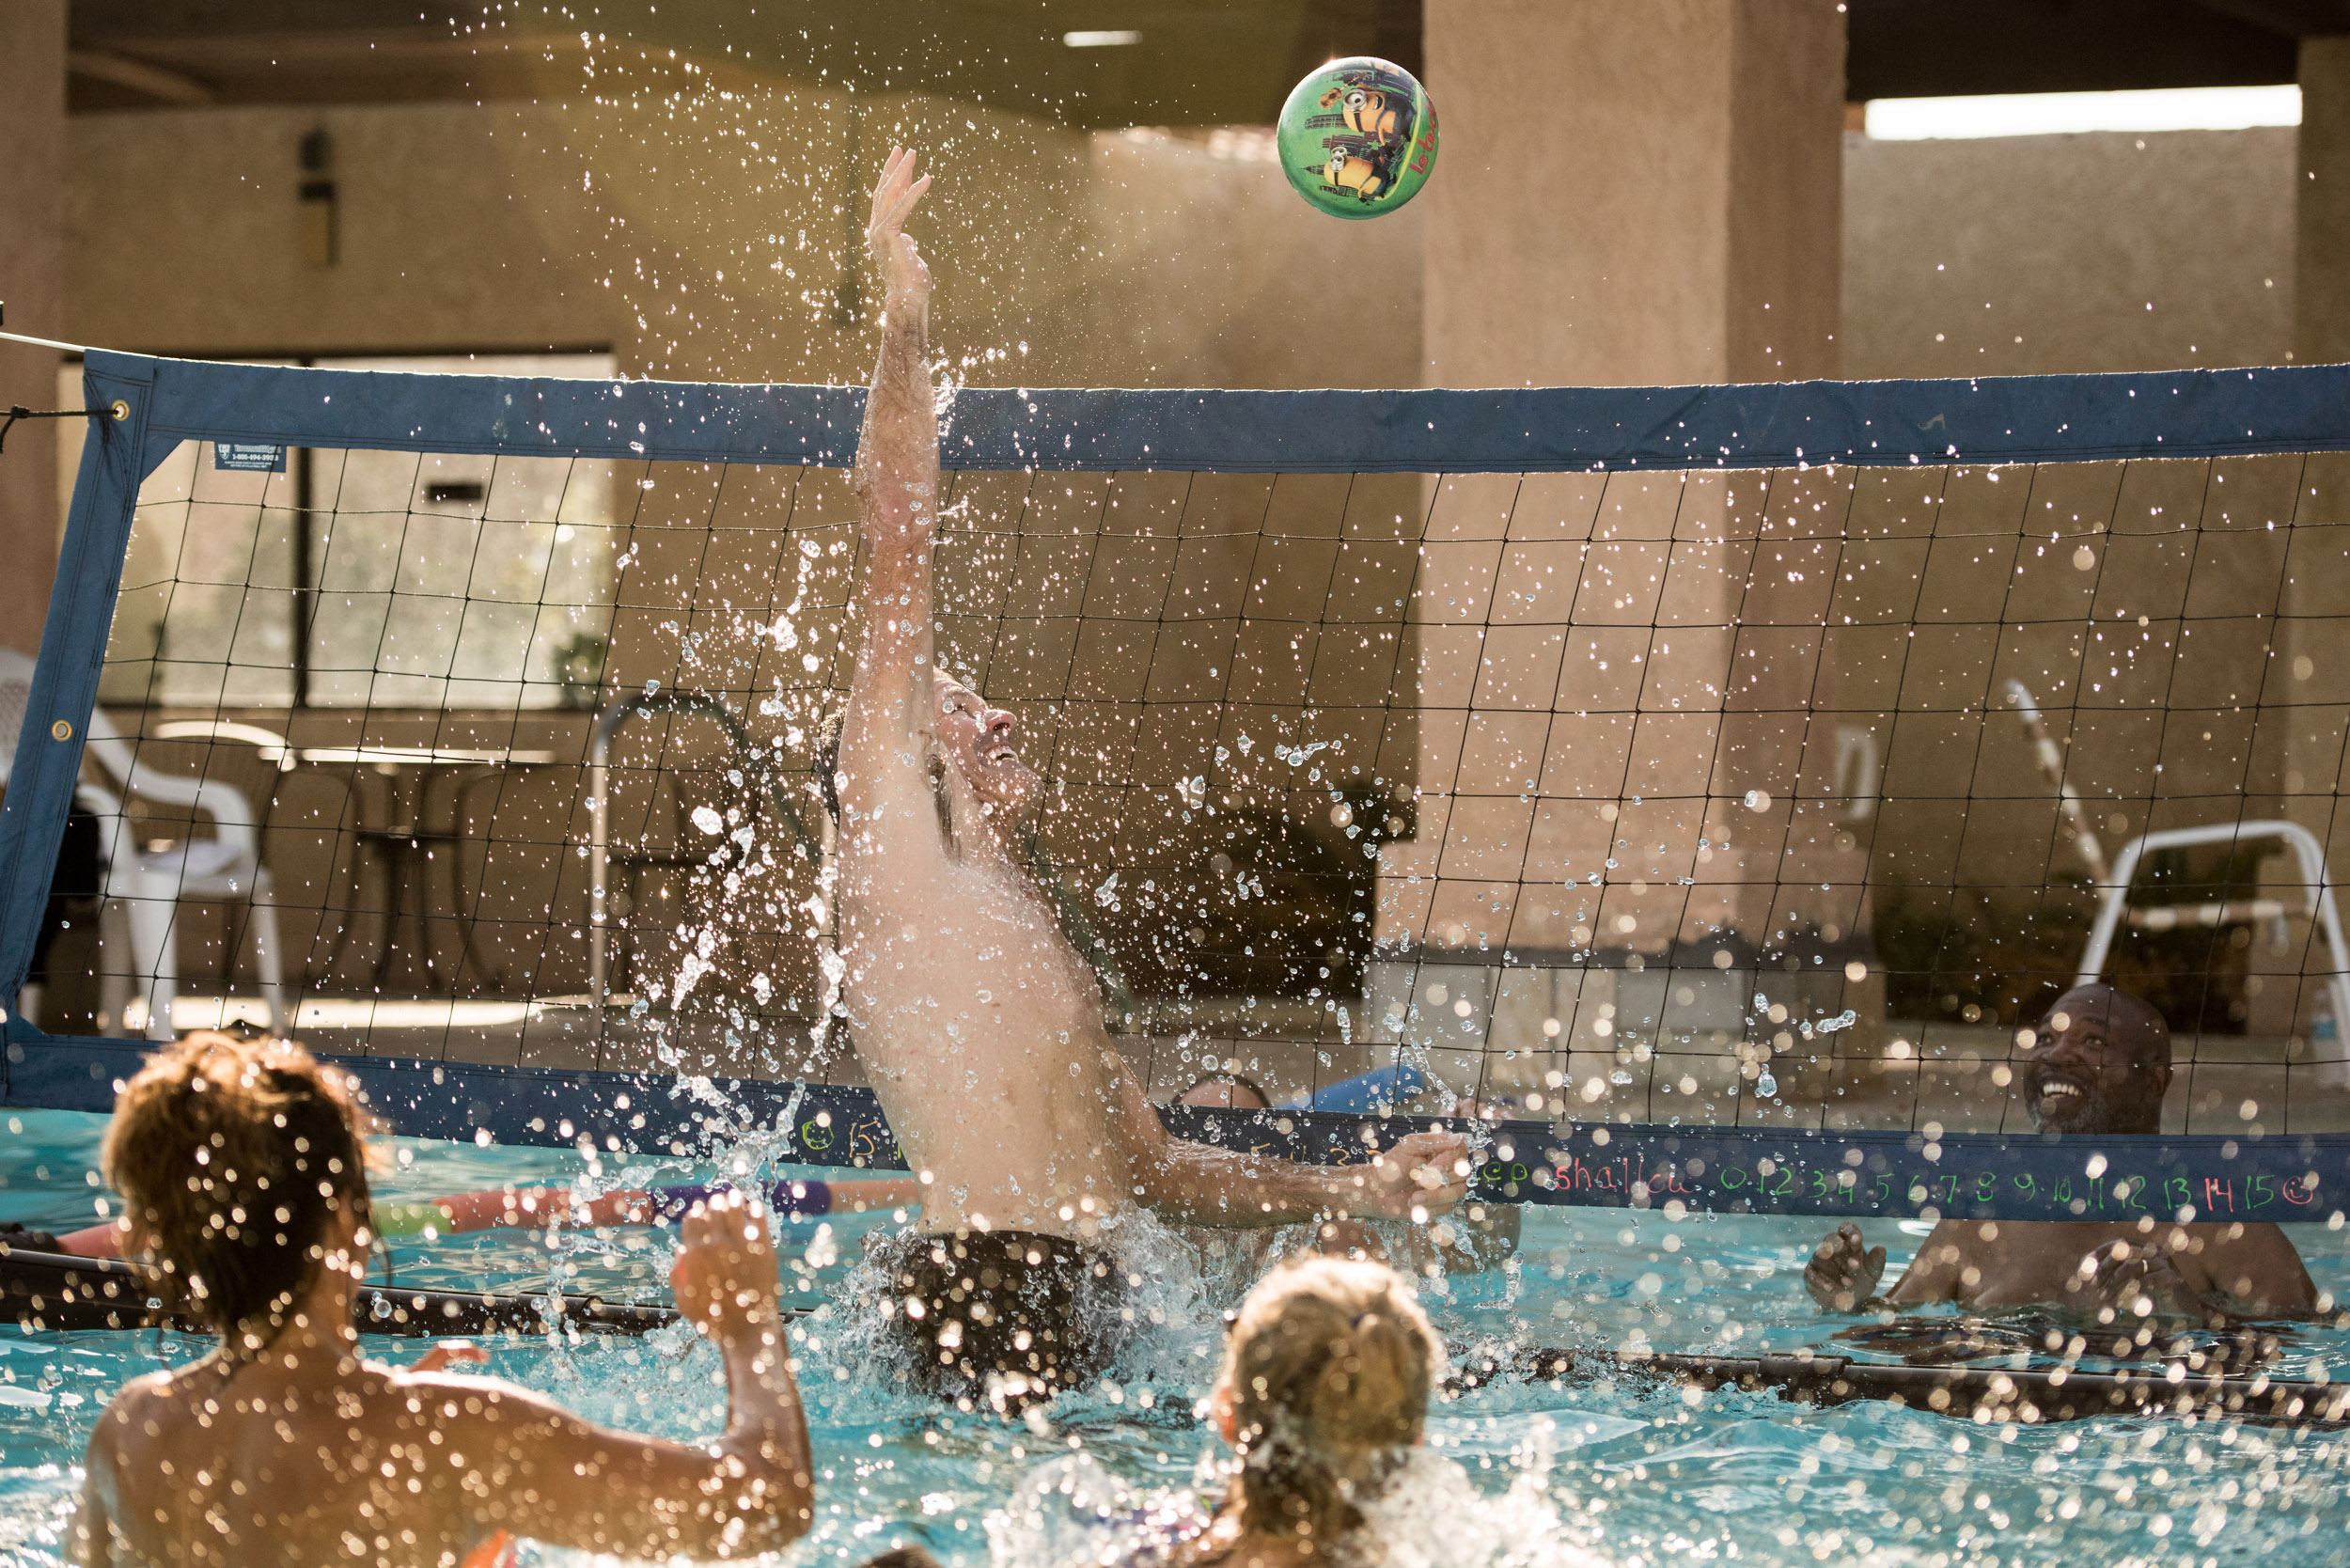 waterball-club-rv-park-activities-palm-springs-california.jpg